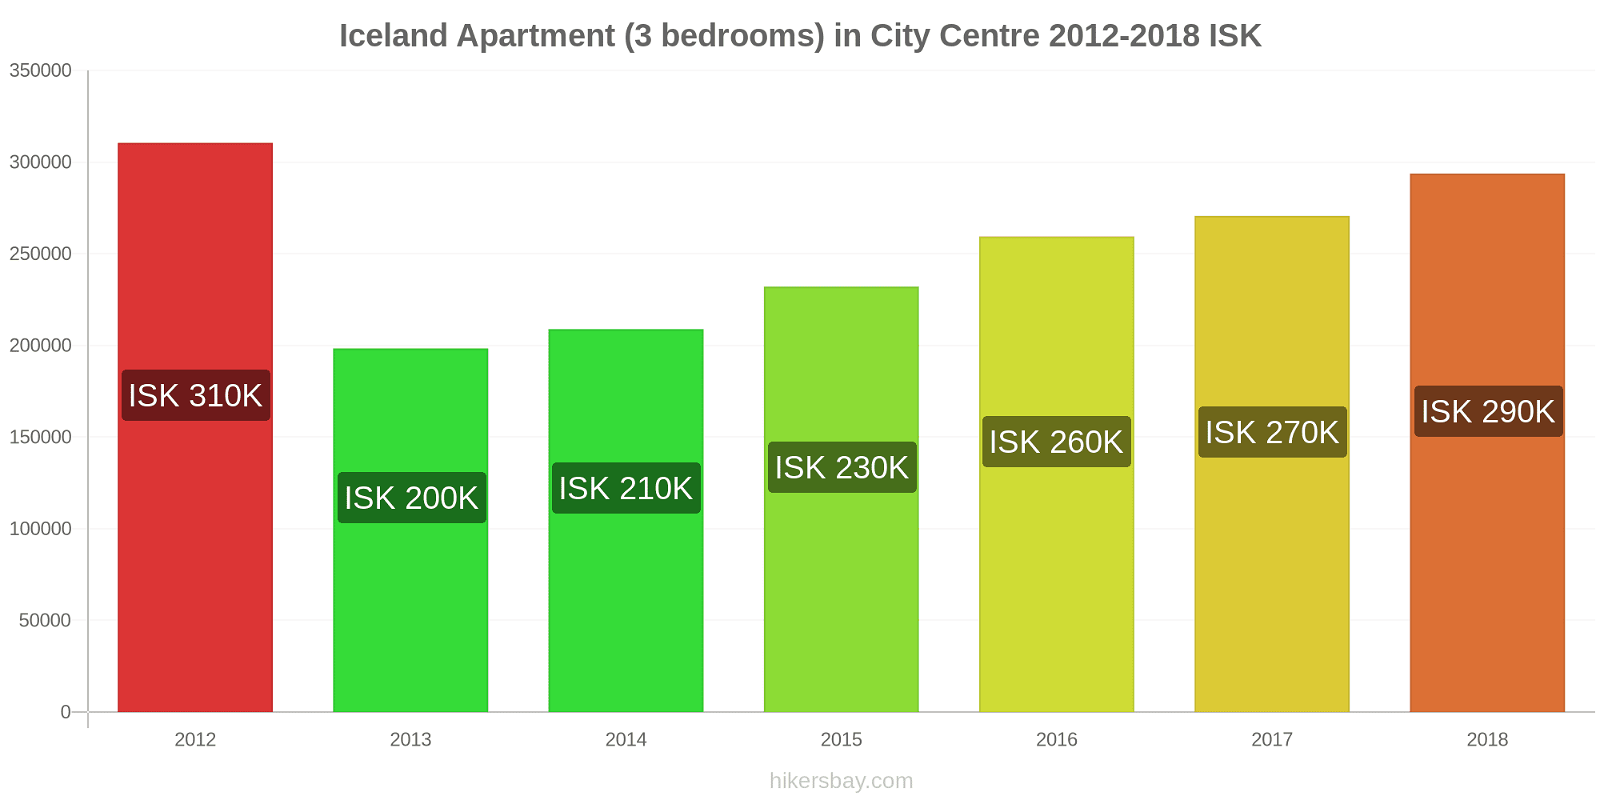 Iceland price changes Apartment (3 bedrooms) in City Centre hikersbay.com